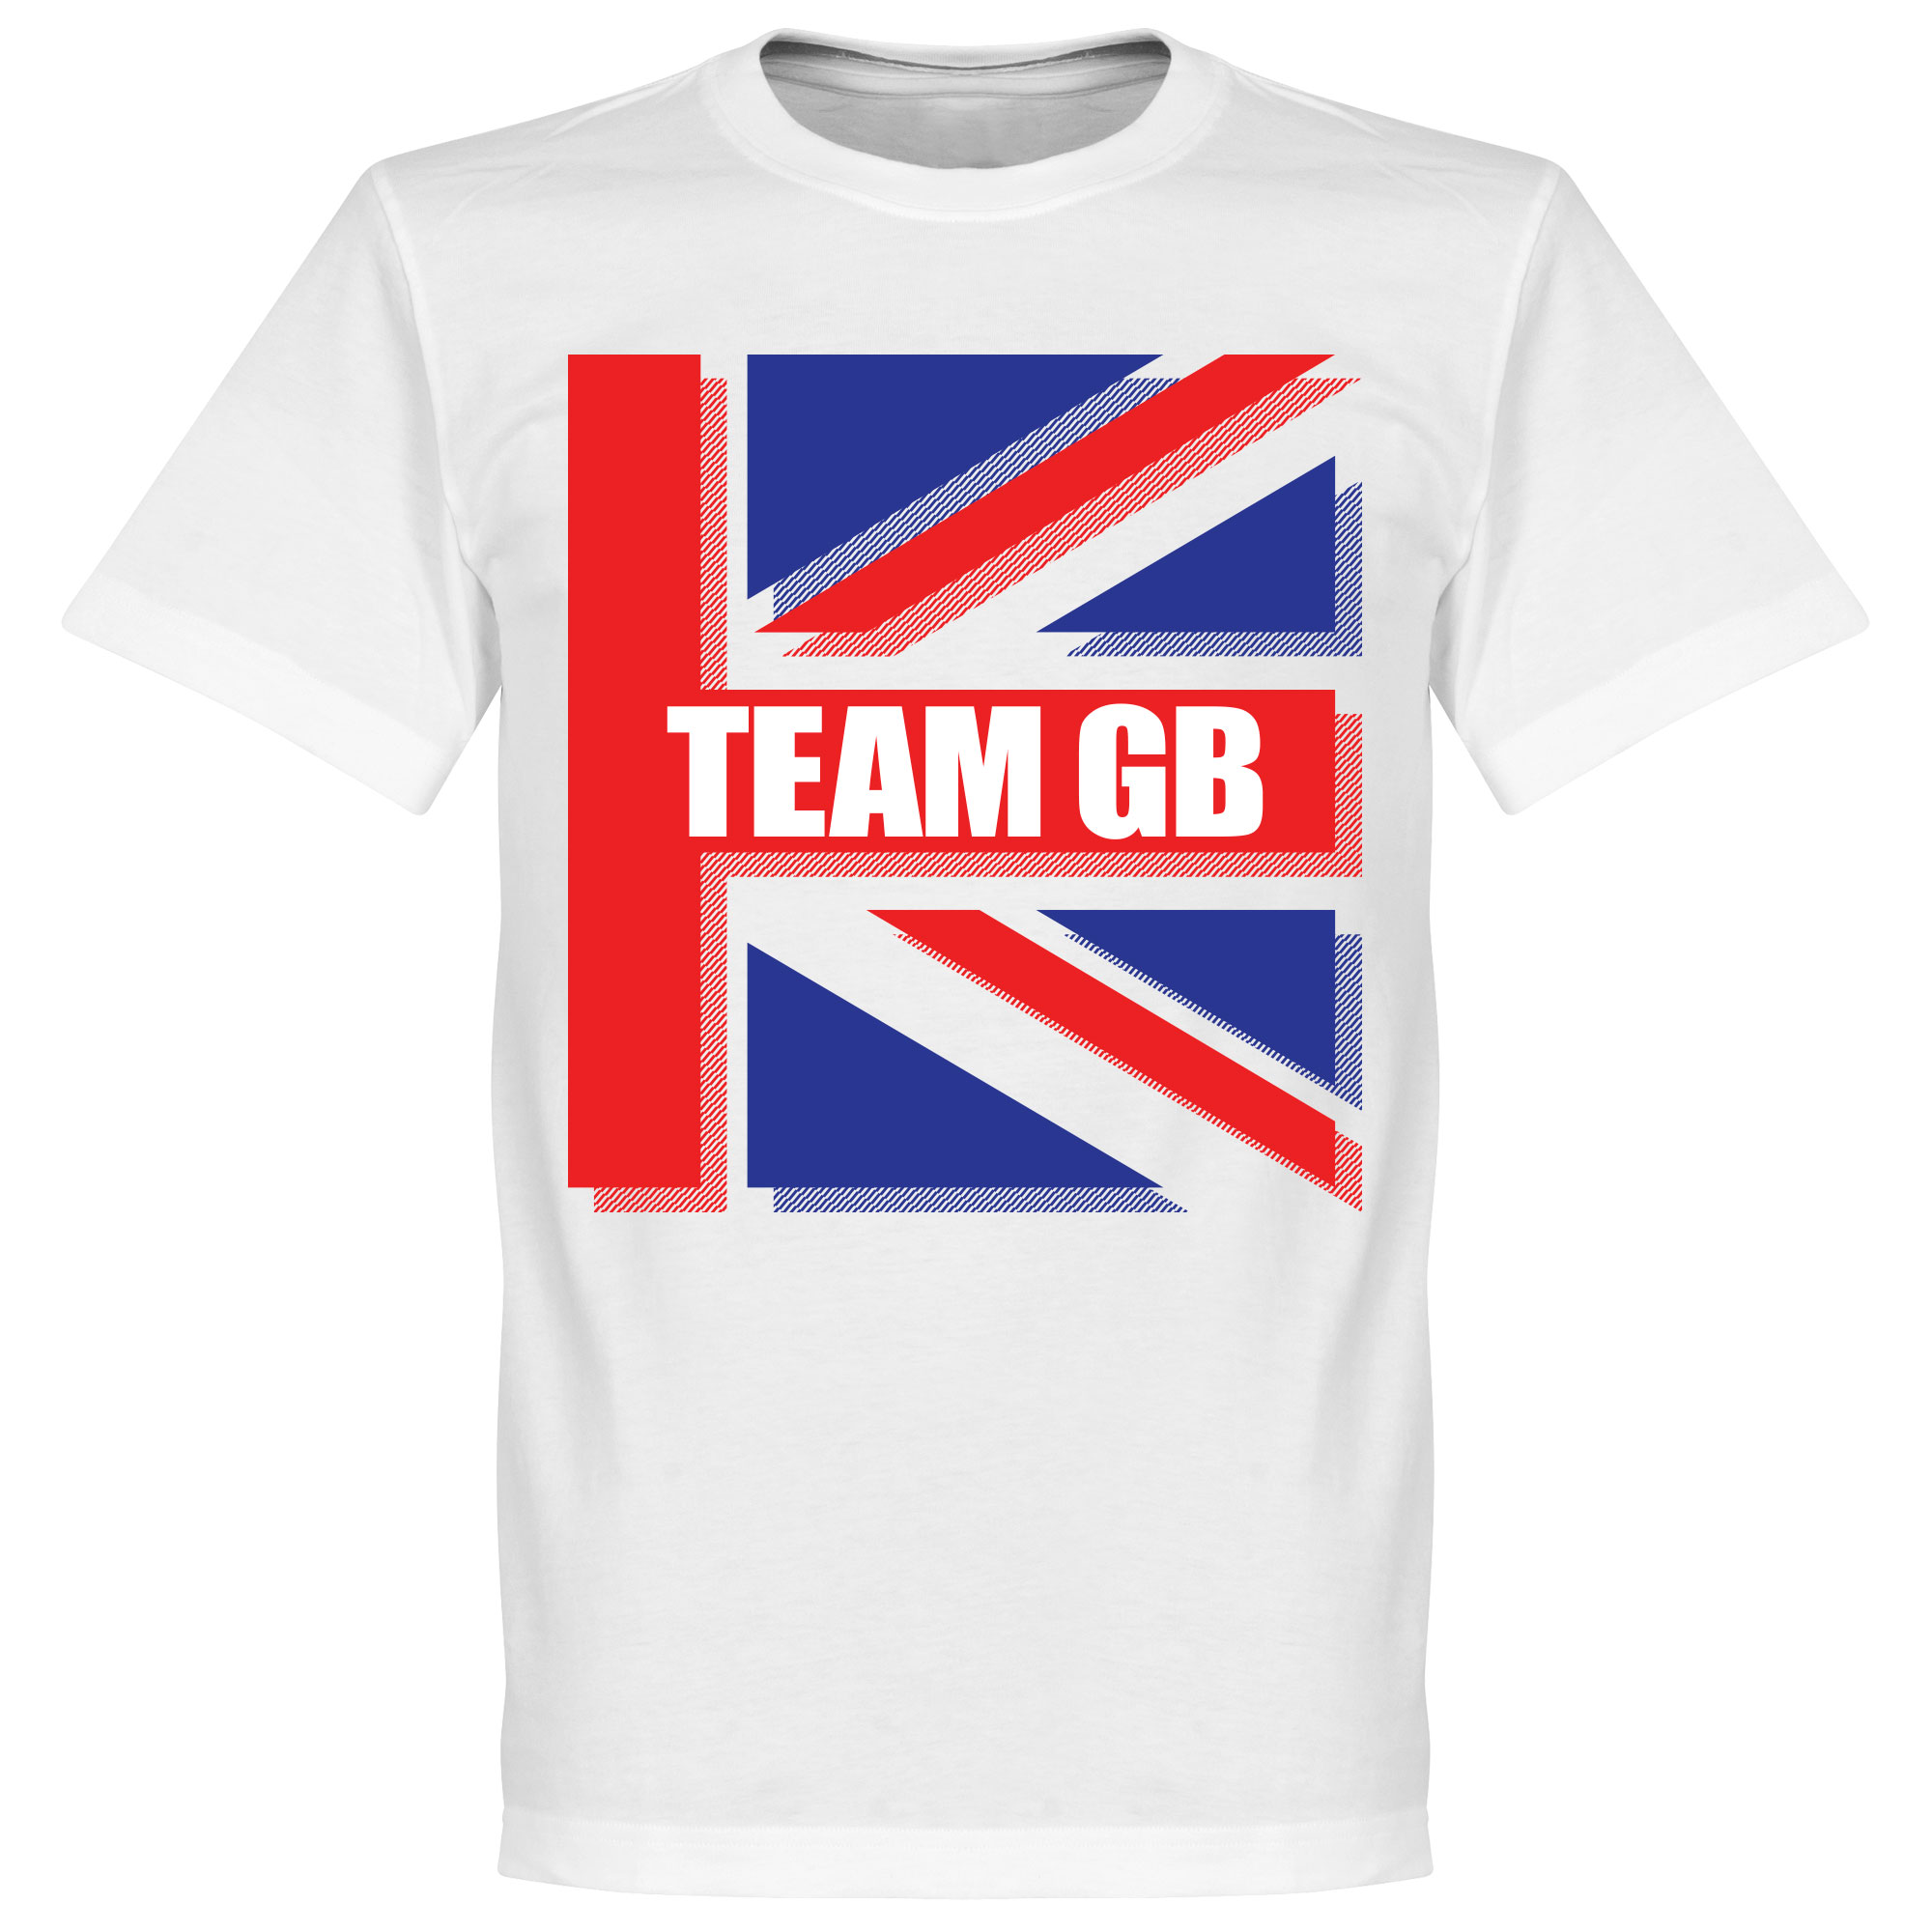 Team GB Tee - White - XL